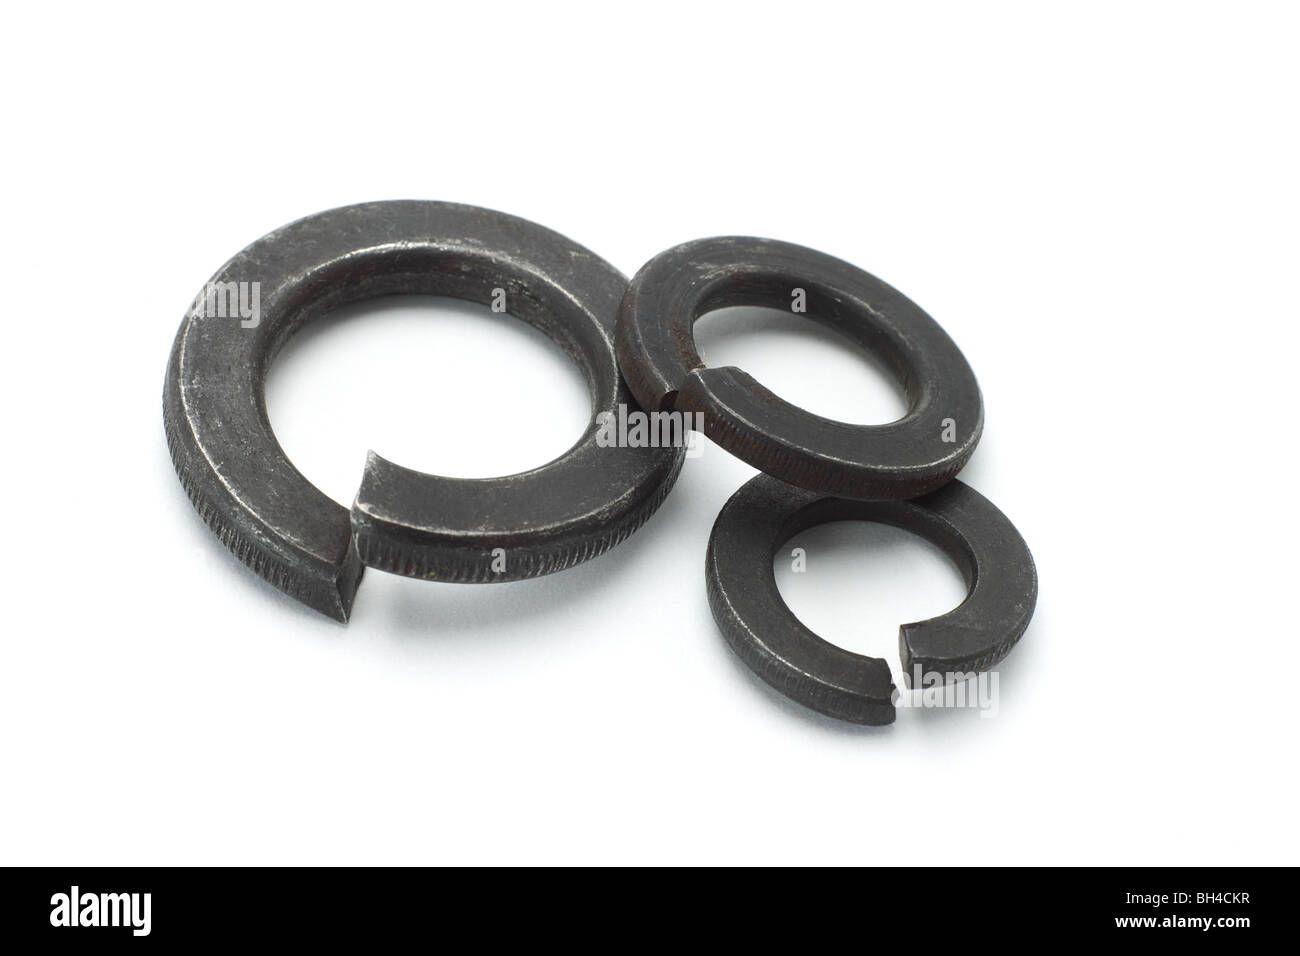 Three used metal washers on white background - Stock Image